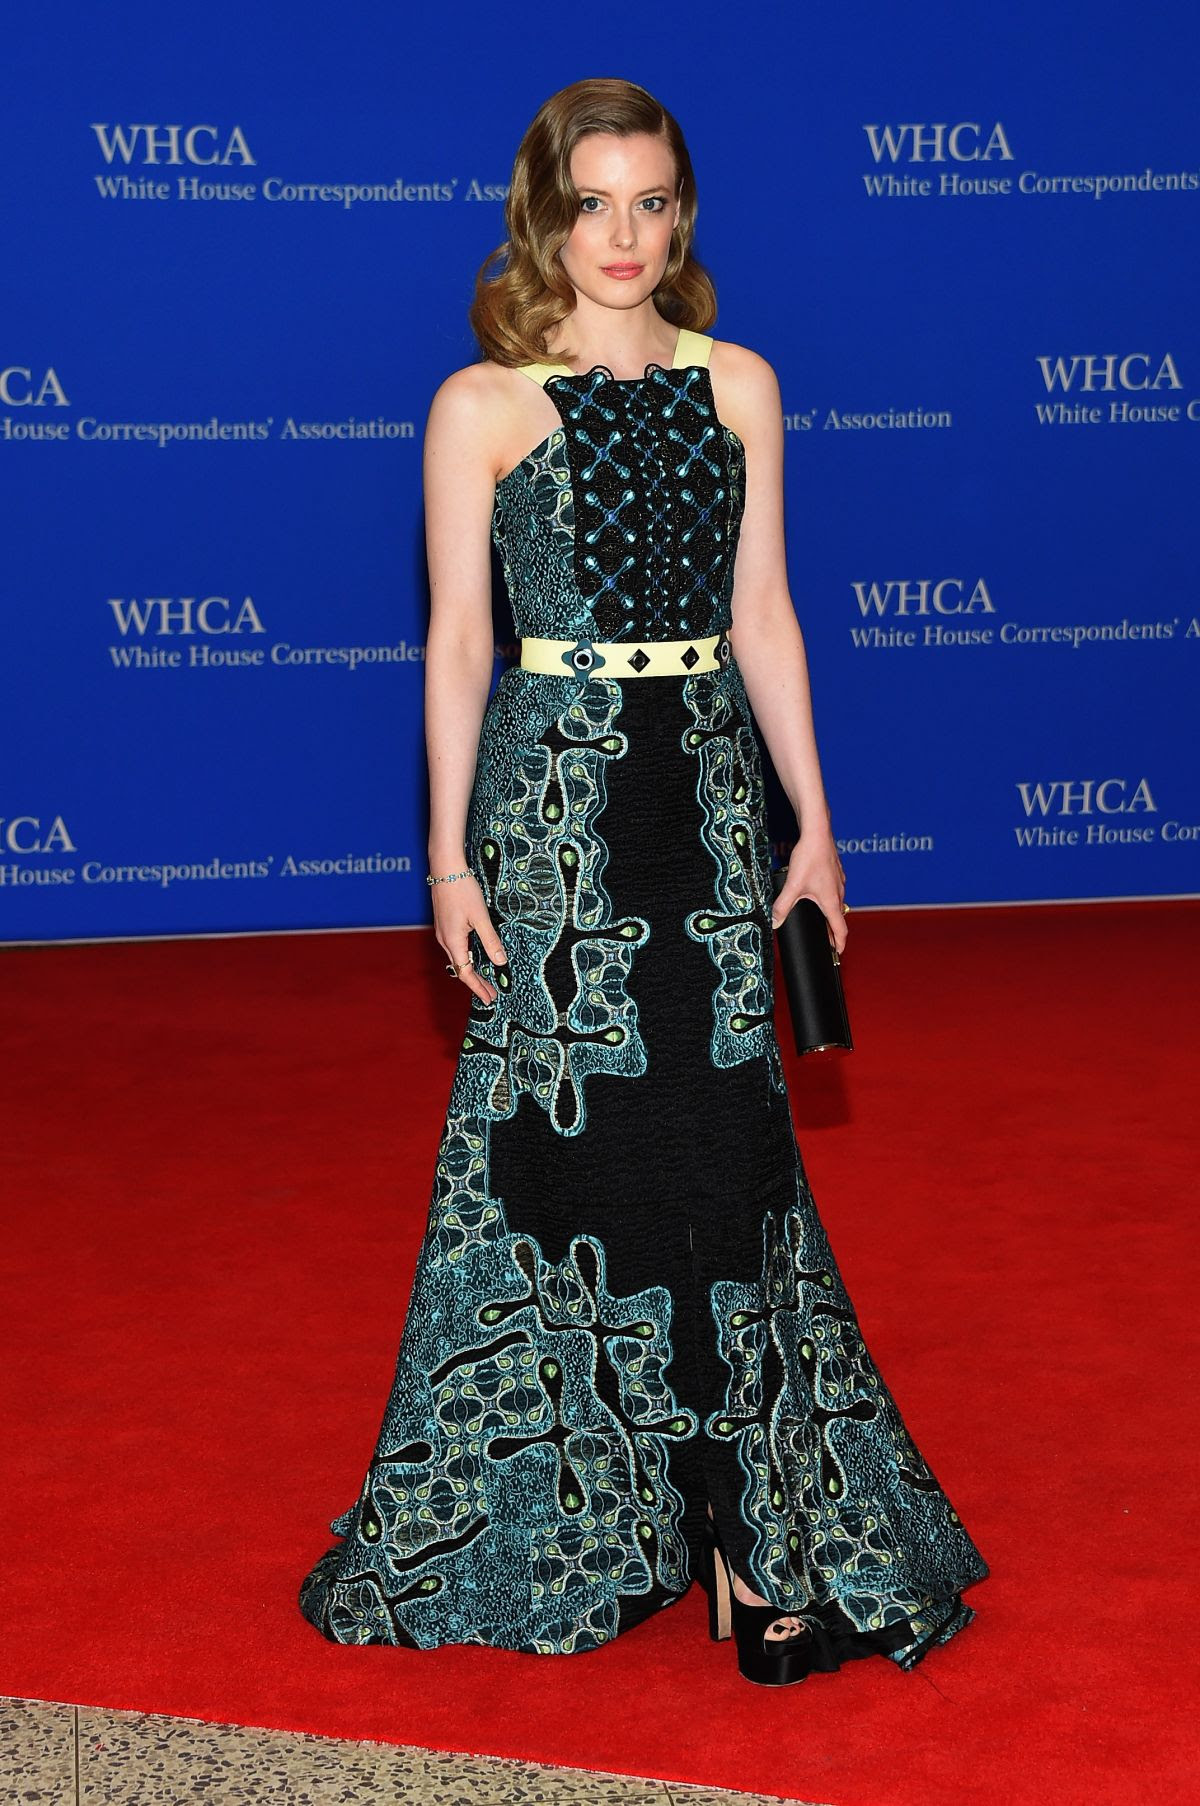 GILLIAN JACOBS at White House Communications Agency Dinner in Washington